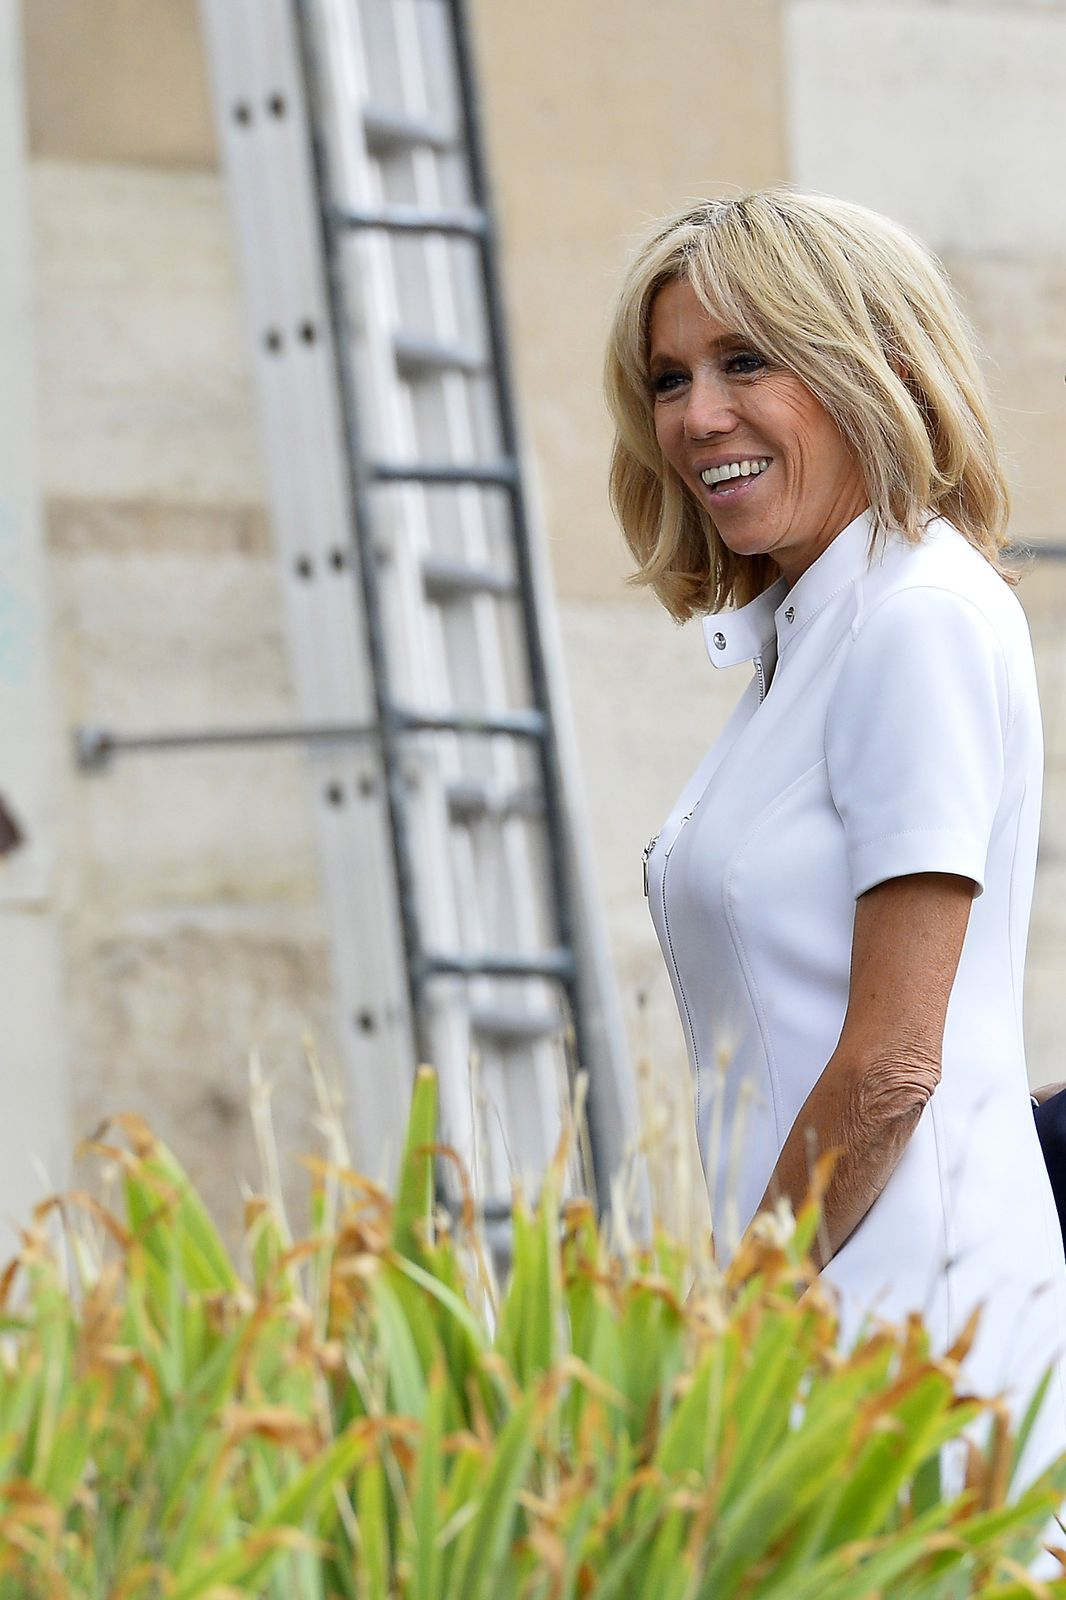 La première dame Brigitte Macron | Photo : Getty Images